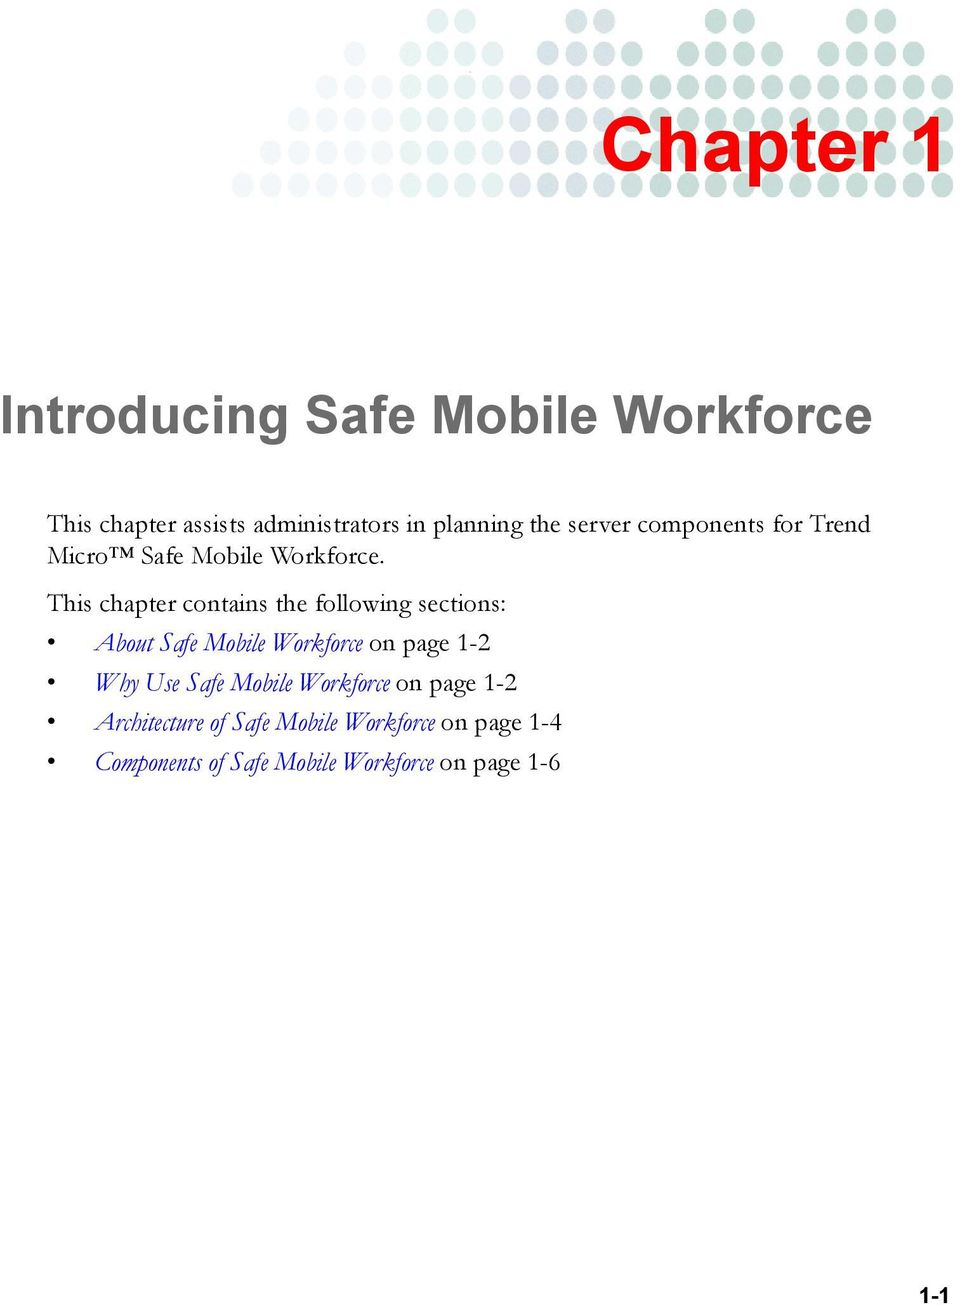 This chapter contains the following sections: About Safe Mobile Workforce on page 1-2 Why Use